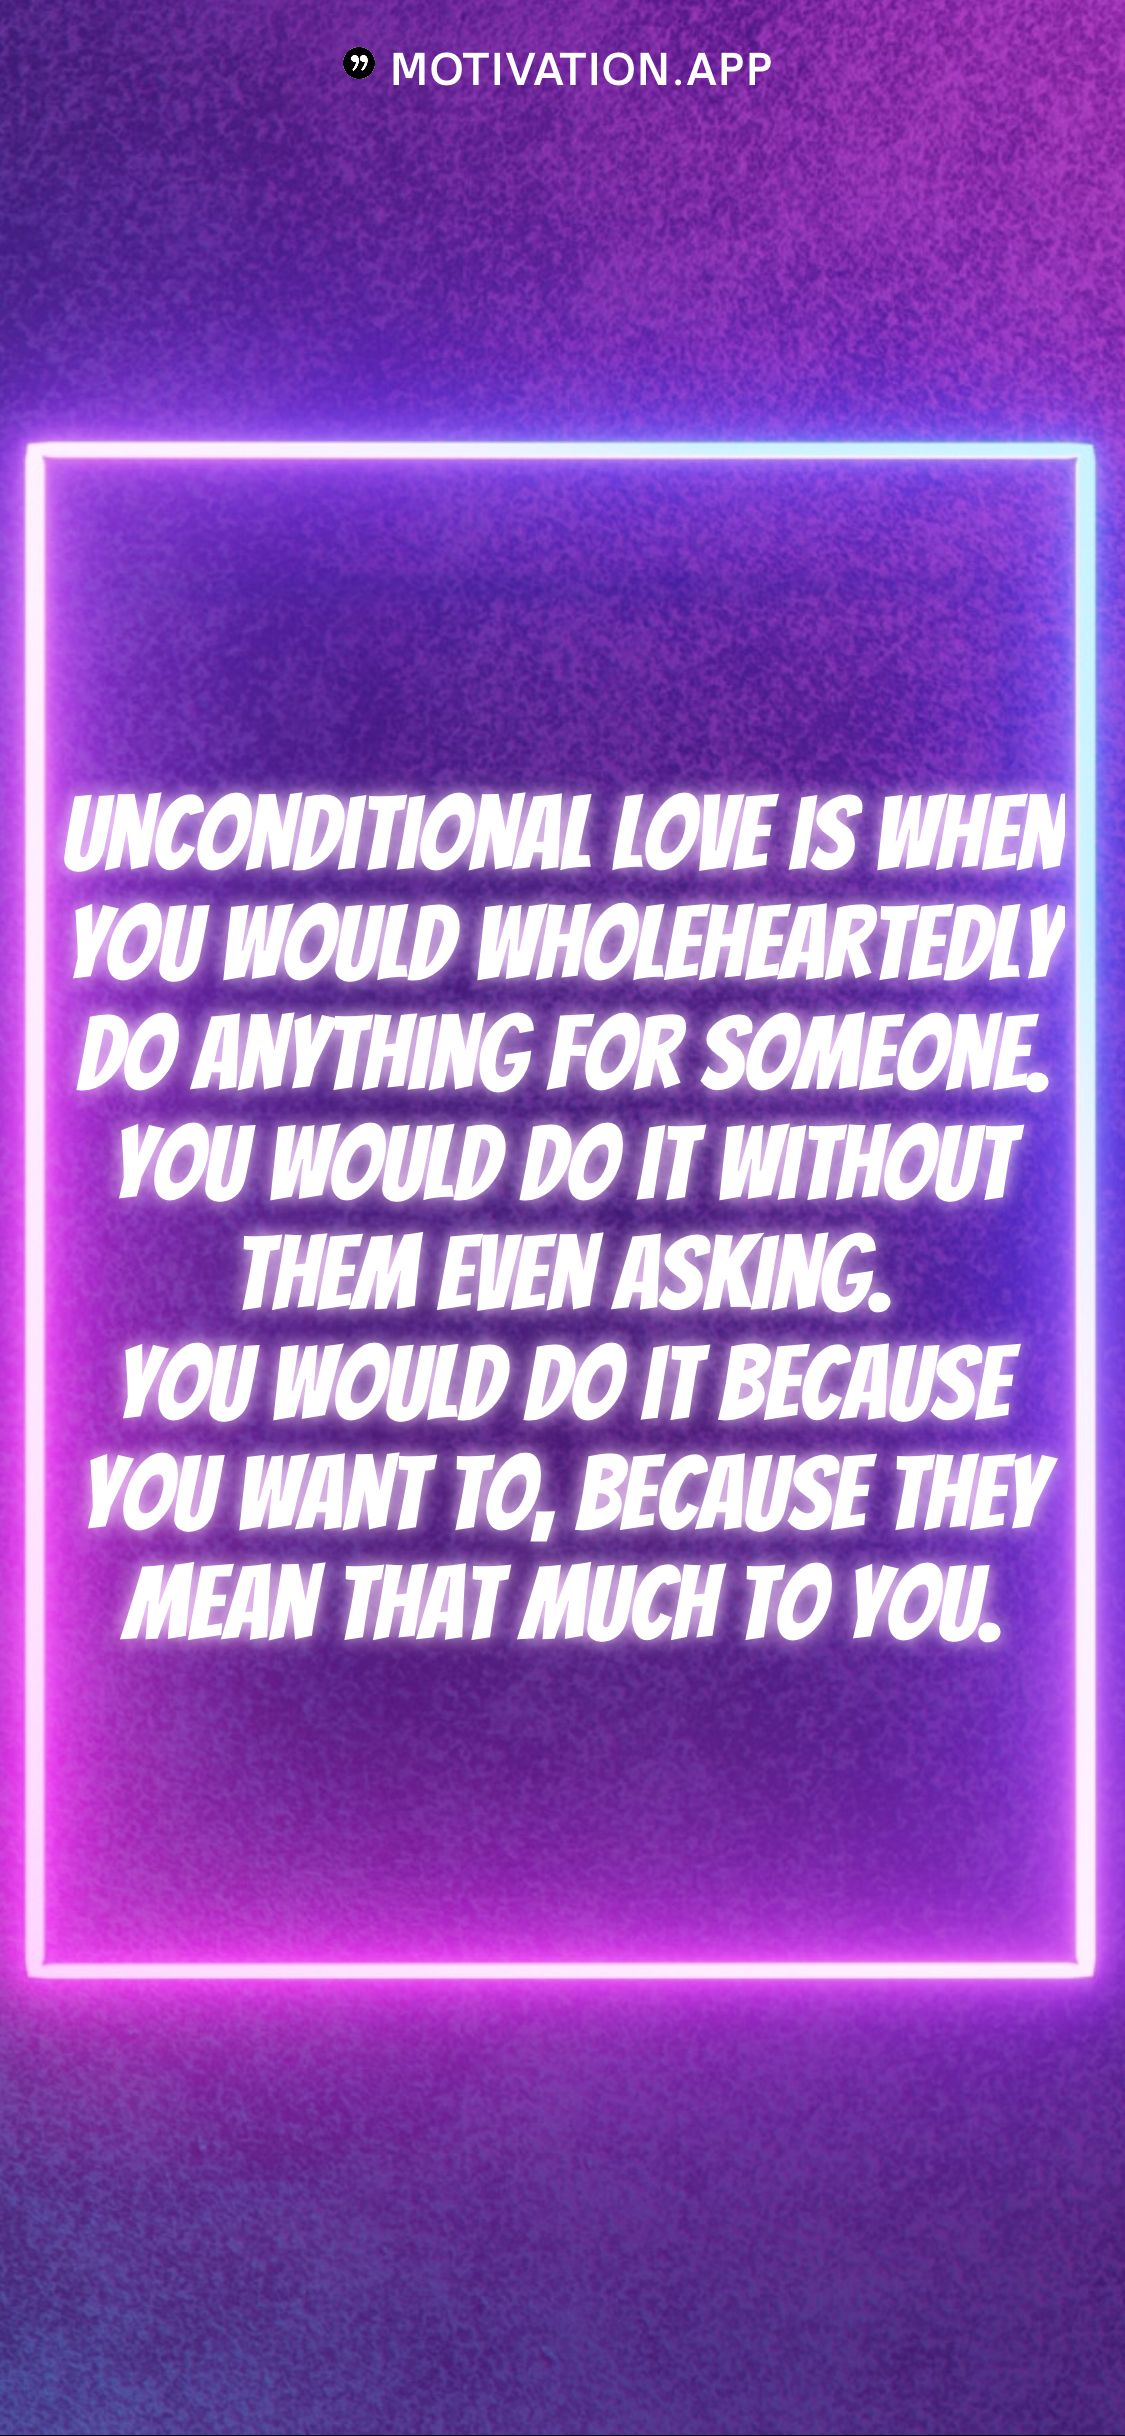 Unconditional Love Is When You Would Wholeheartedly Do Anything For Someone You Would Do It Without Them Even Ask Motivation App Love Is When Boyfriend Quotes